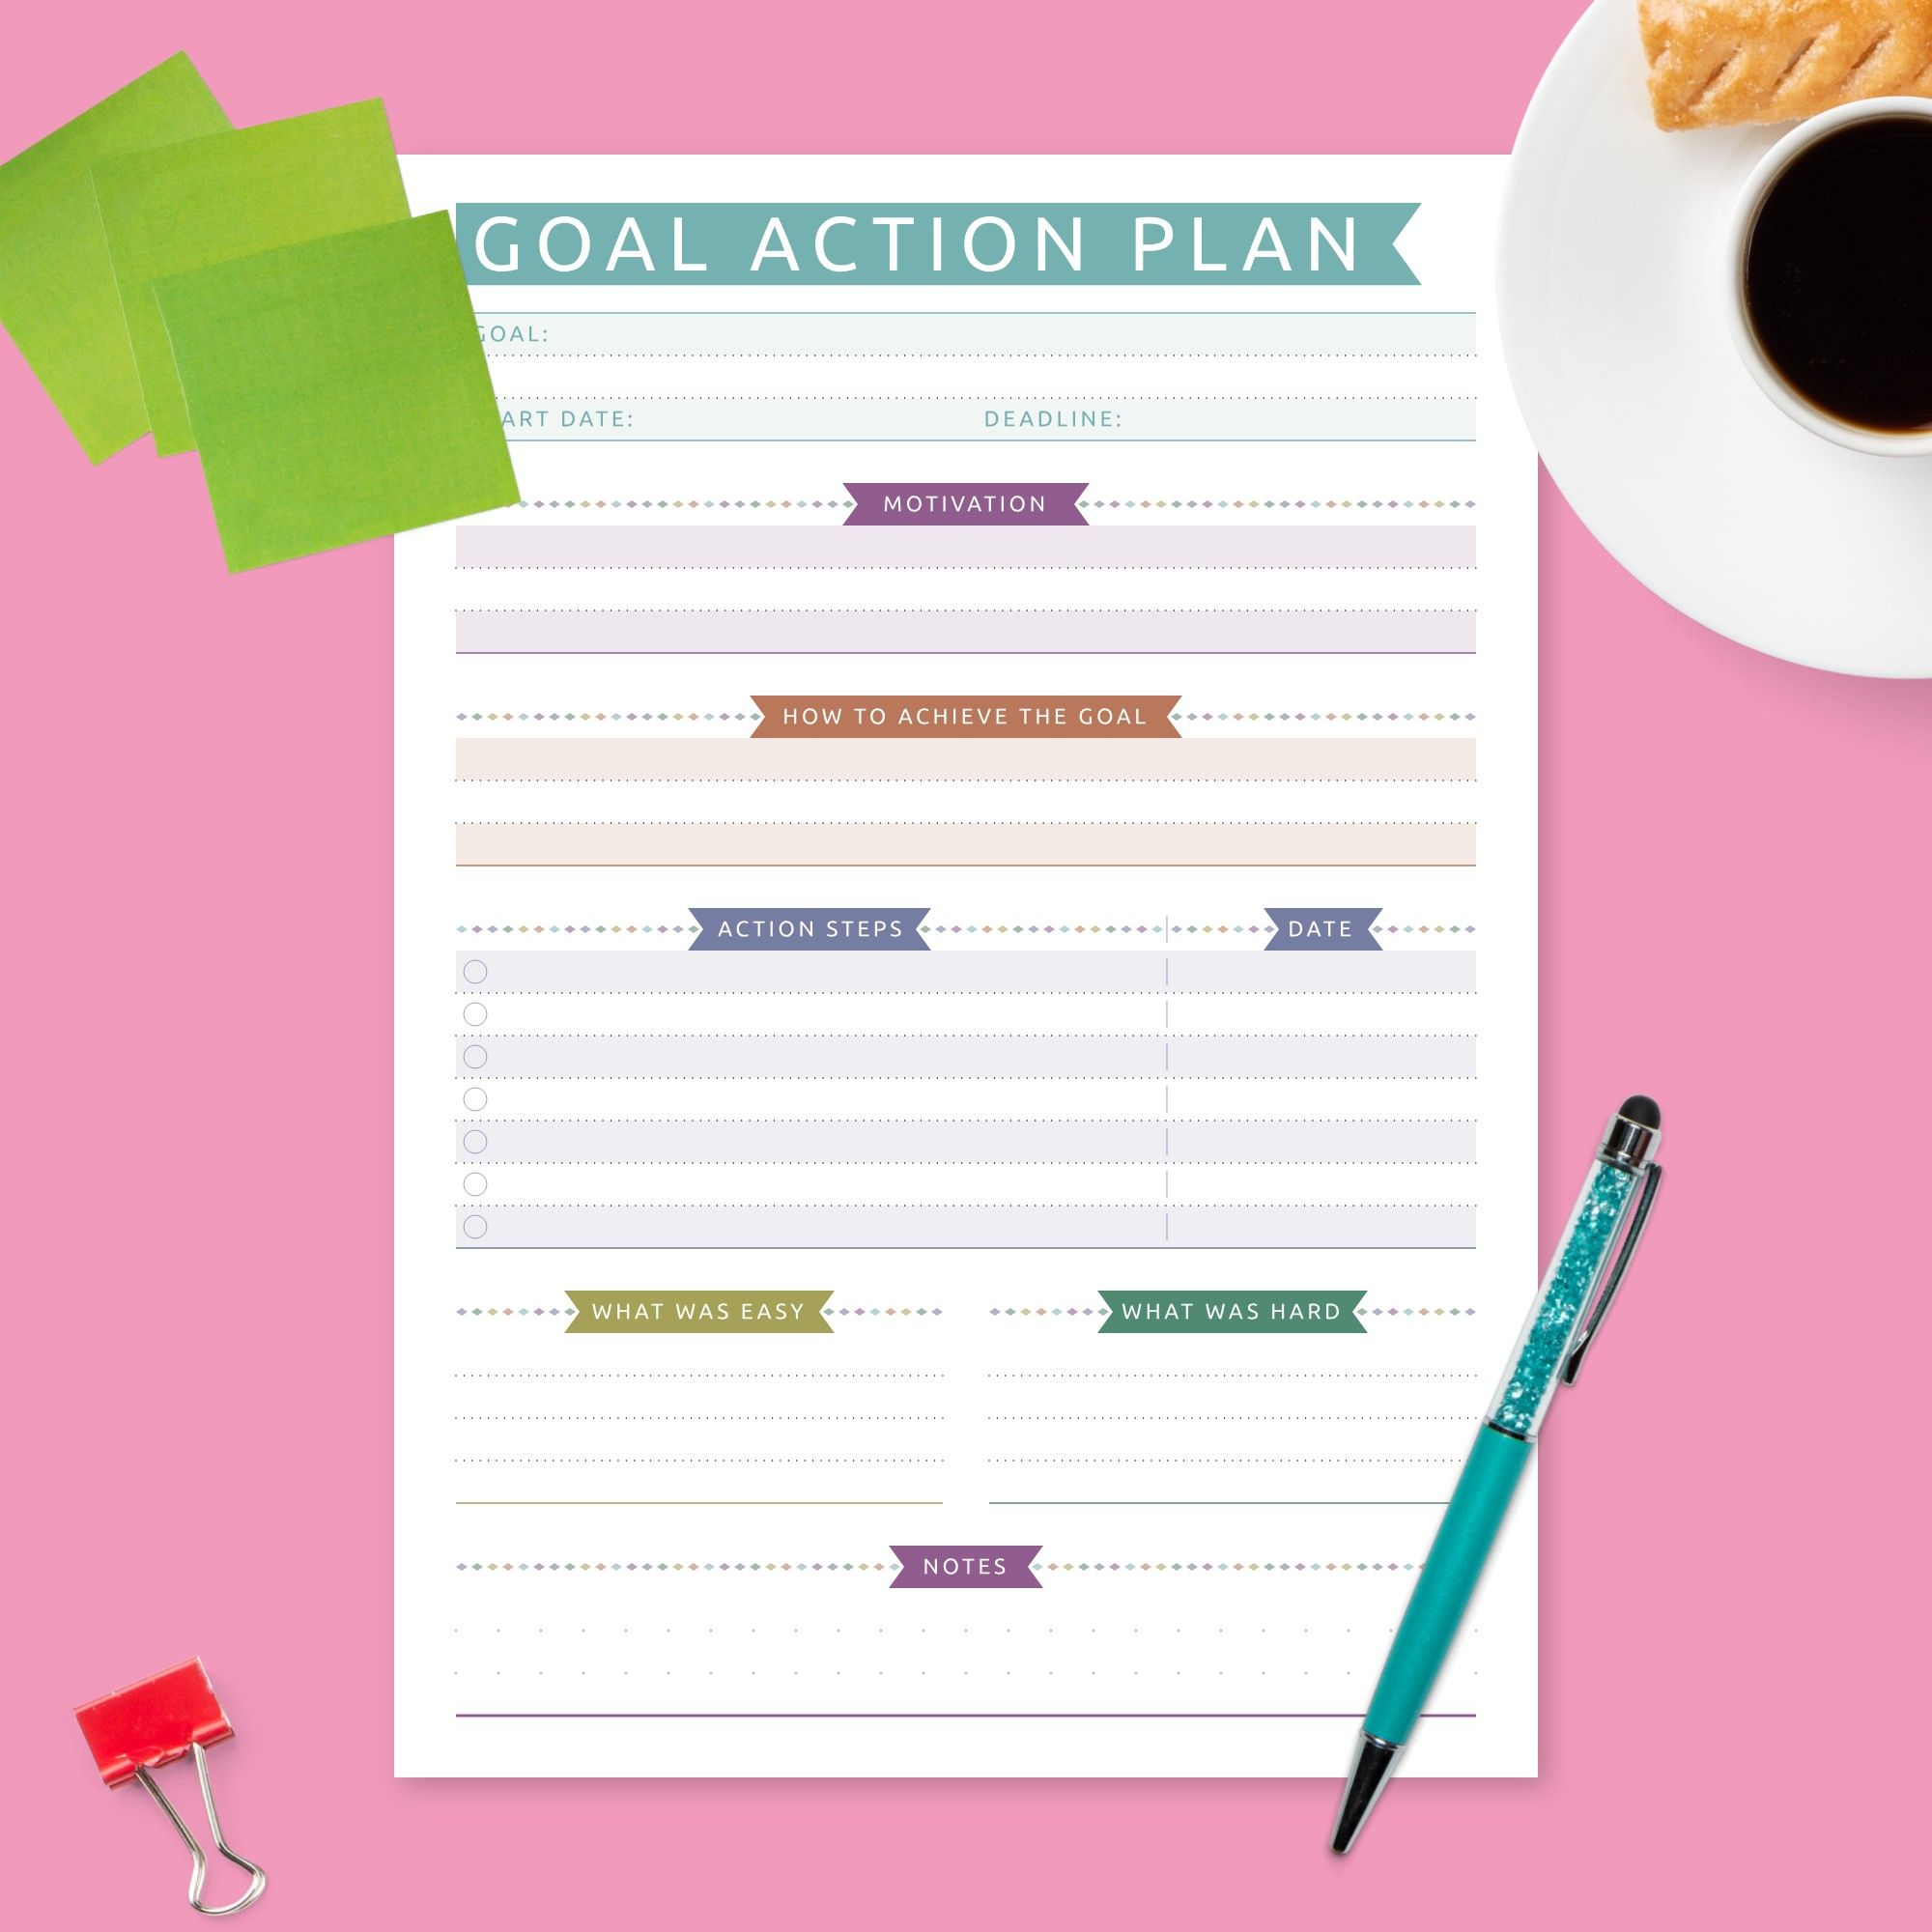 Use Goal Setting Template With Colored Design To Create A User Friendly Action Plan To Attain Your G Online Card Maker Personalized Greeting Cards Planner Gift